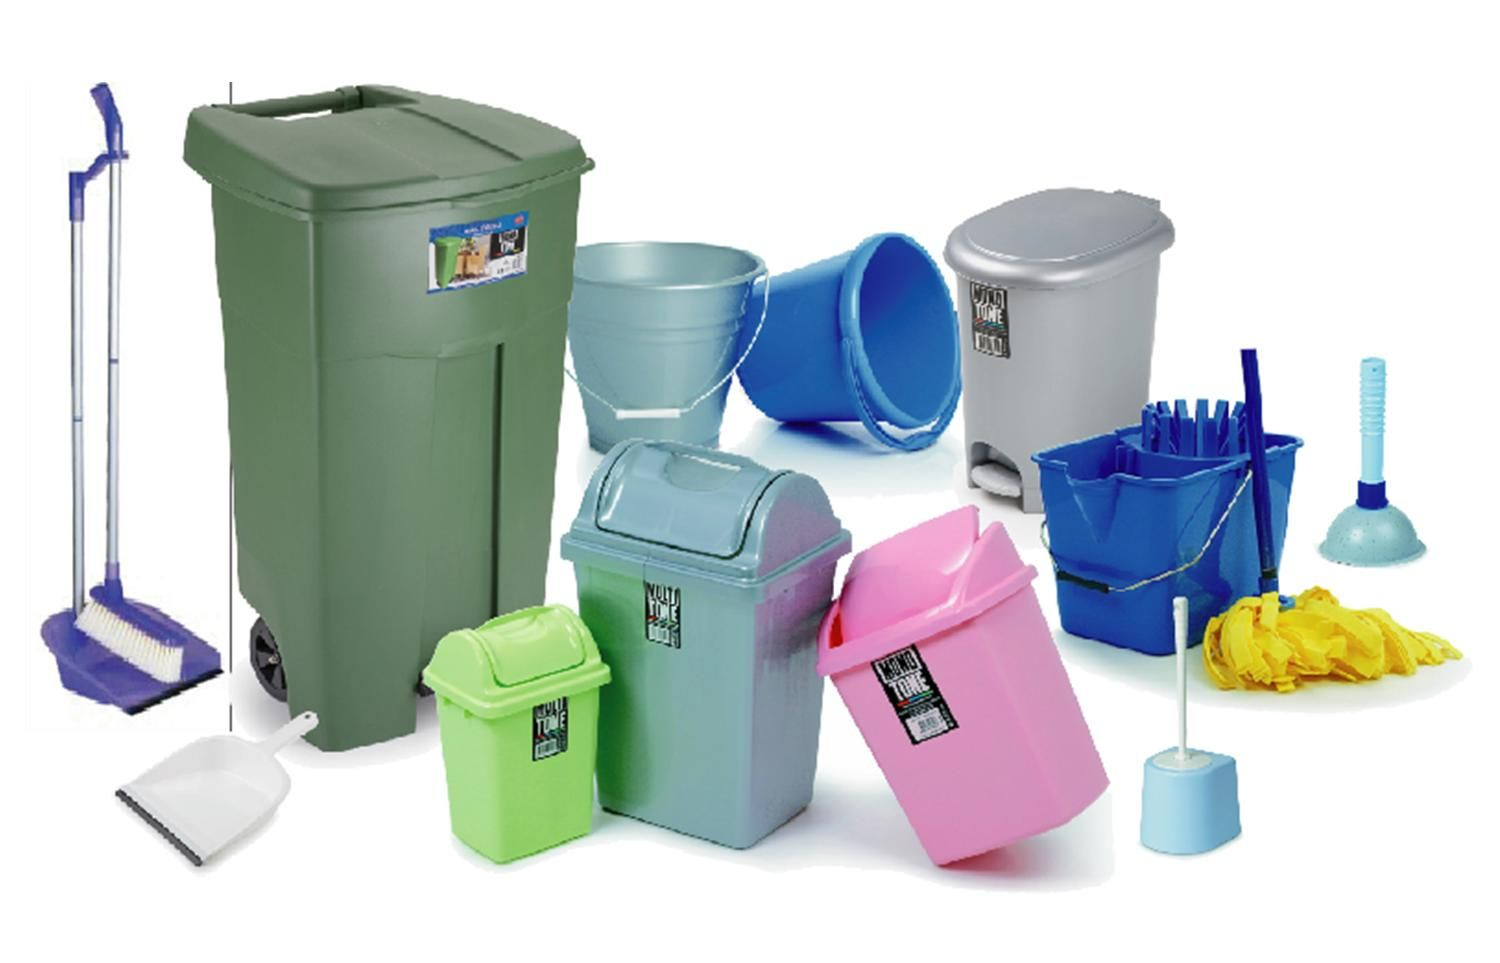 The report plastic product market in india to